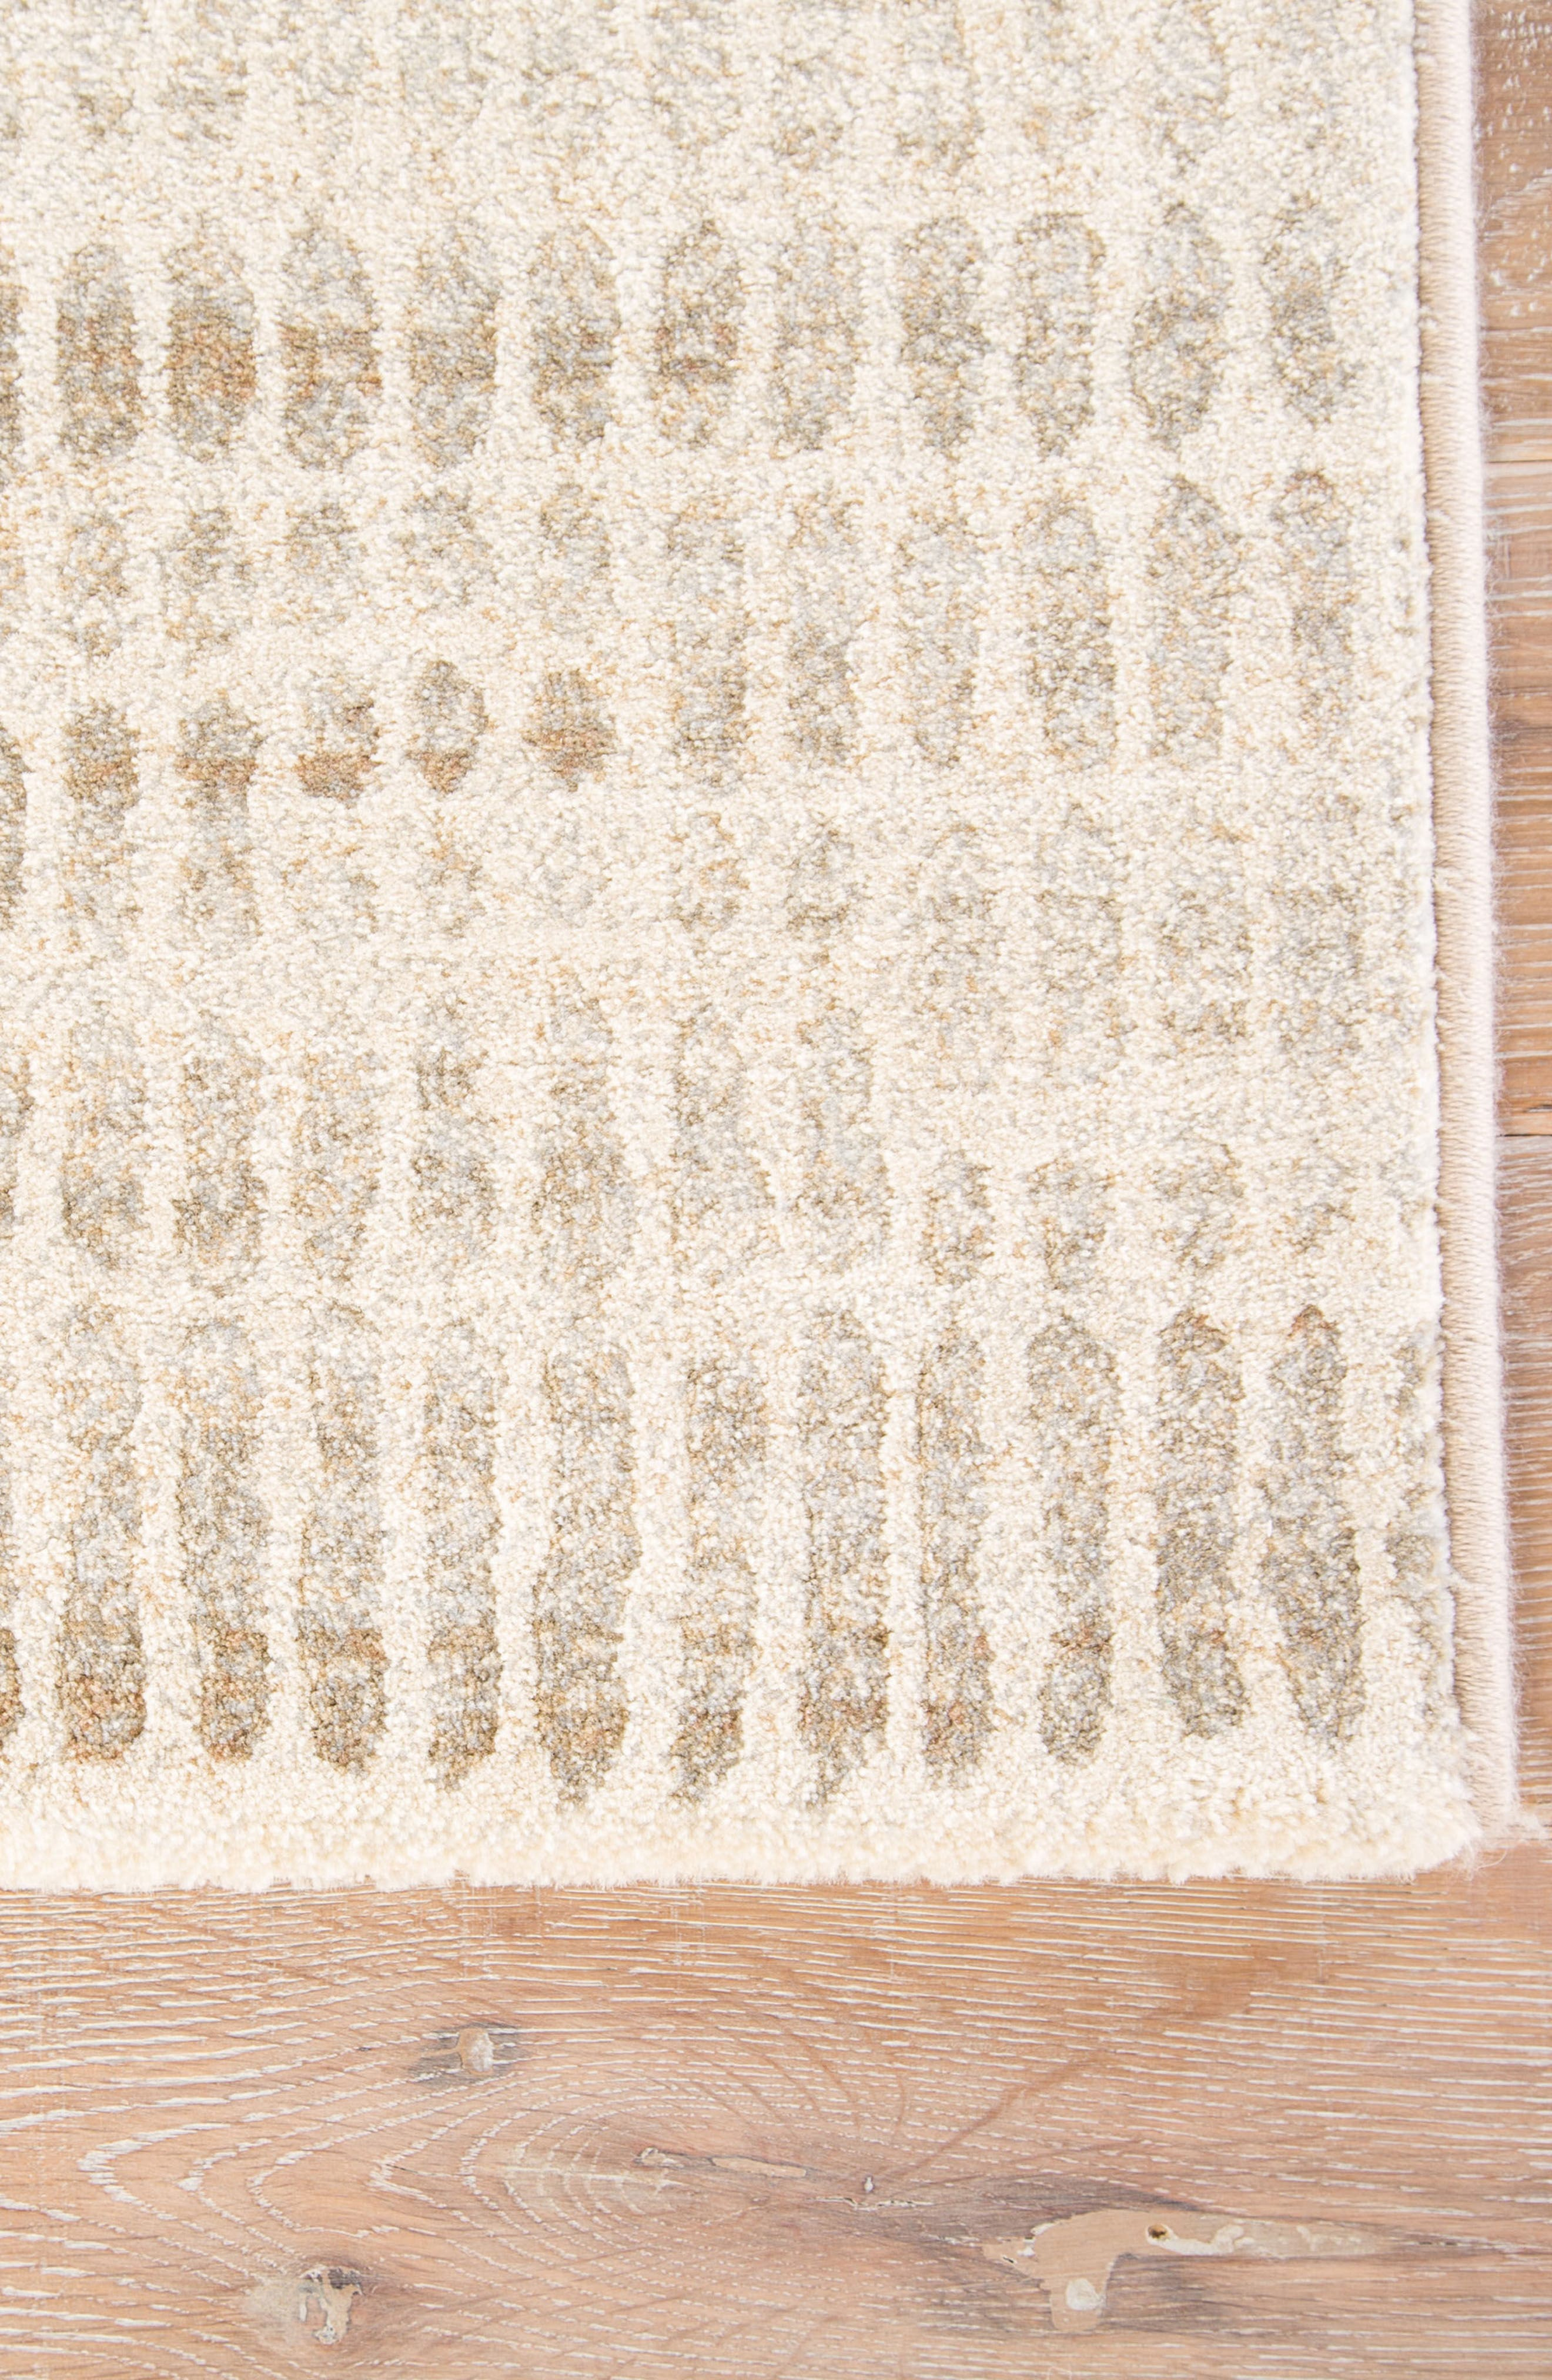 Blurred Water Rug,                             Alternate thumbnail 2, color,                             Beige Taupe